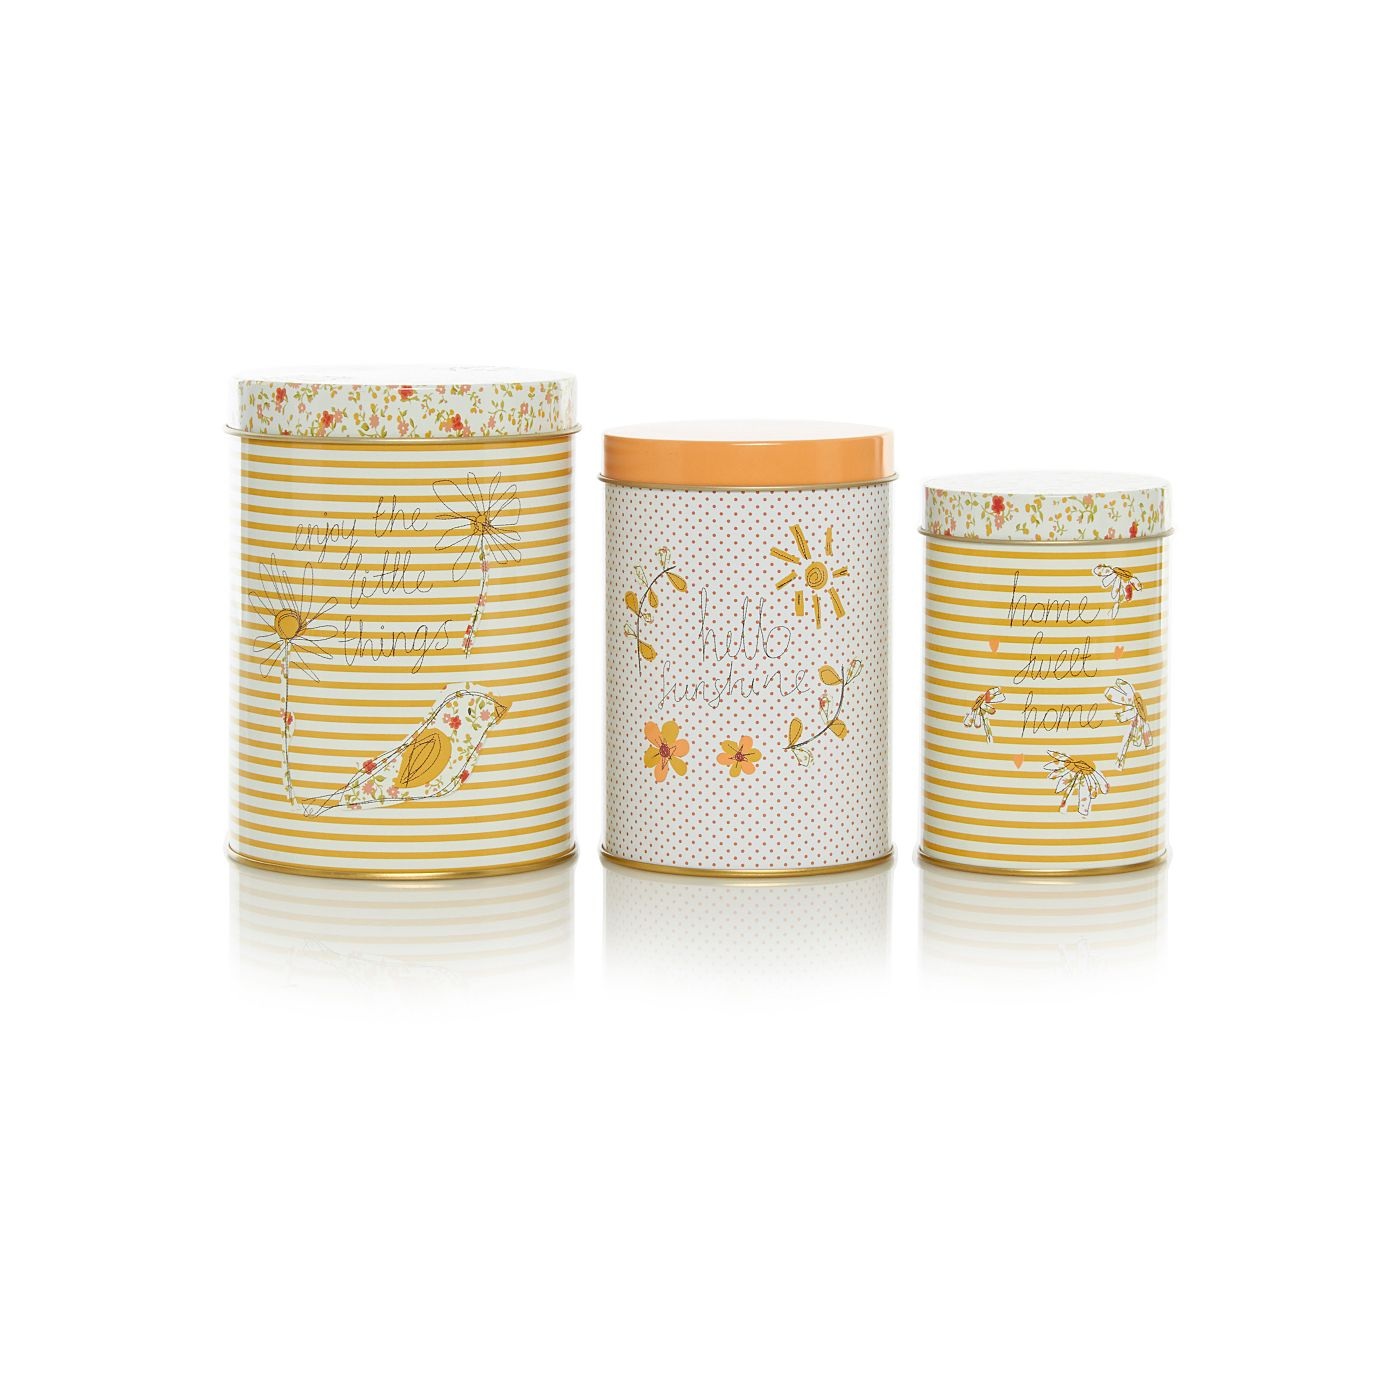 George Home Prince S Trust Nested Canisters 3 Pack Homespun